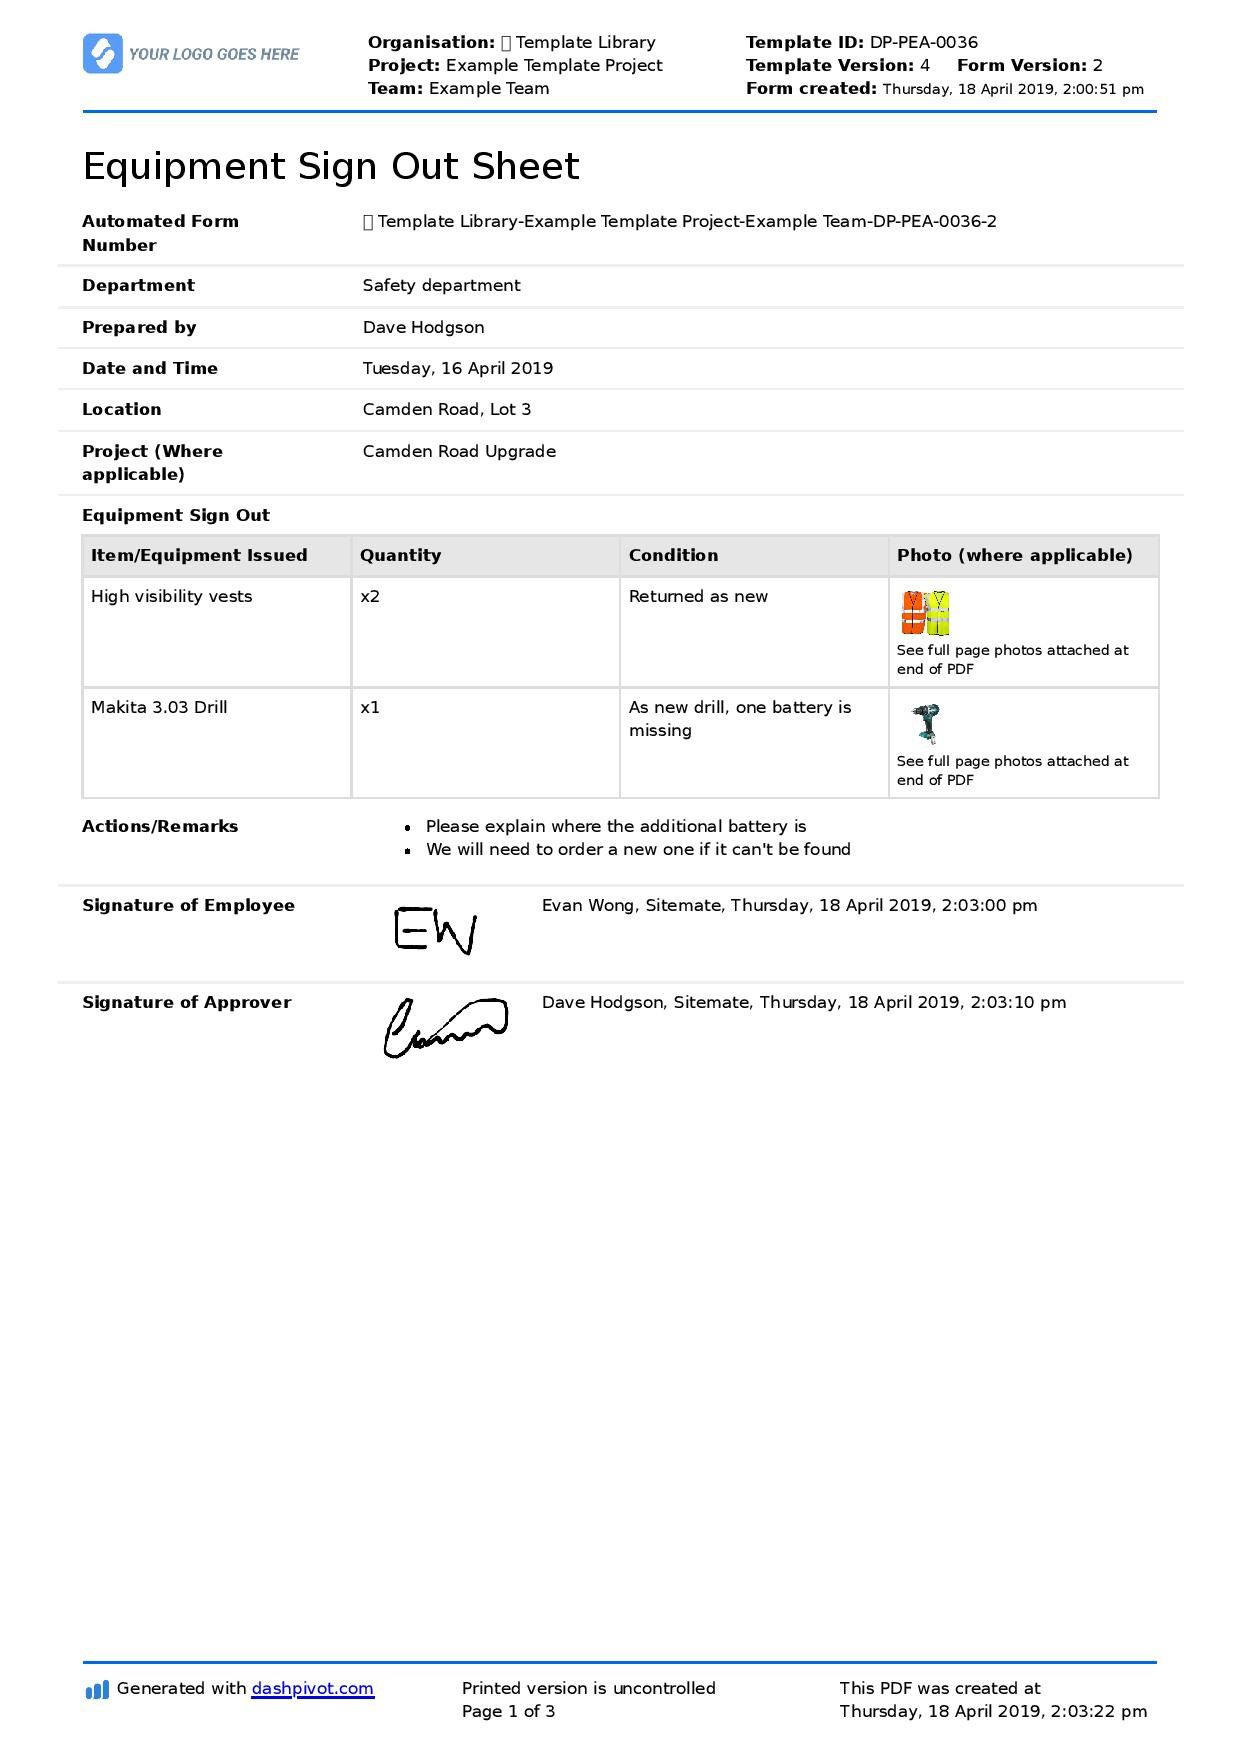 002 Stupendou Employee Sign In Sheet Template Image  Out Excel Word Free Training